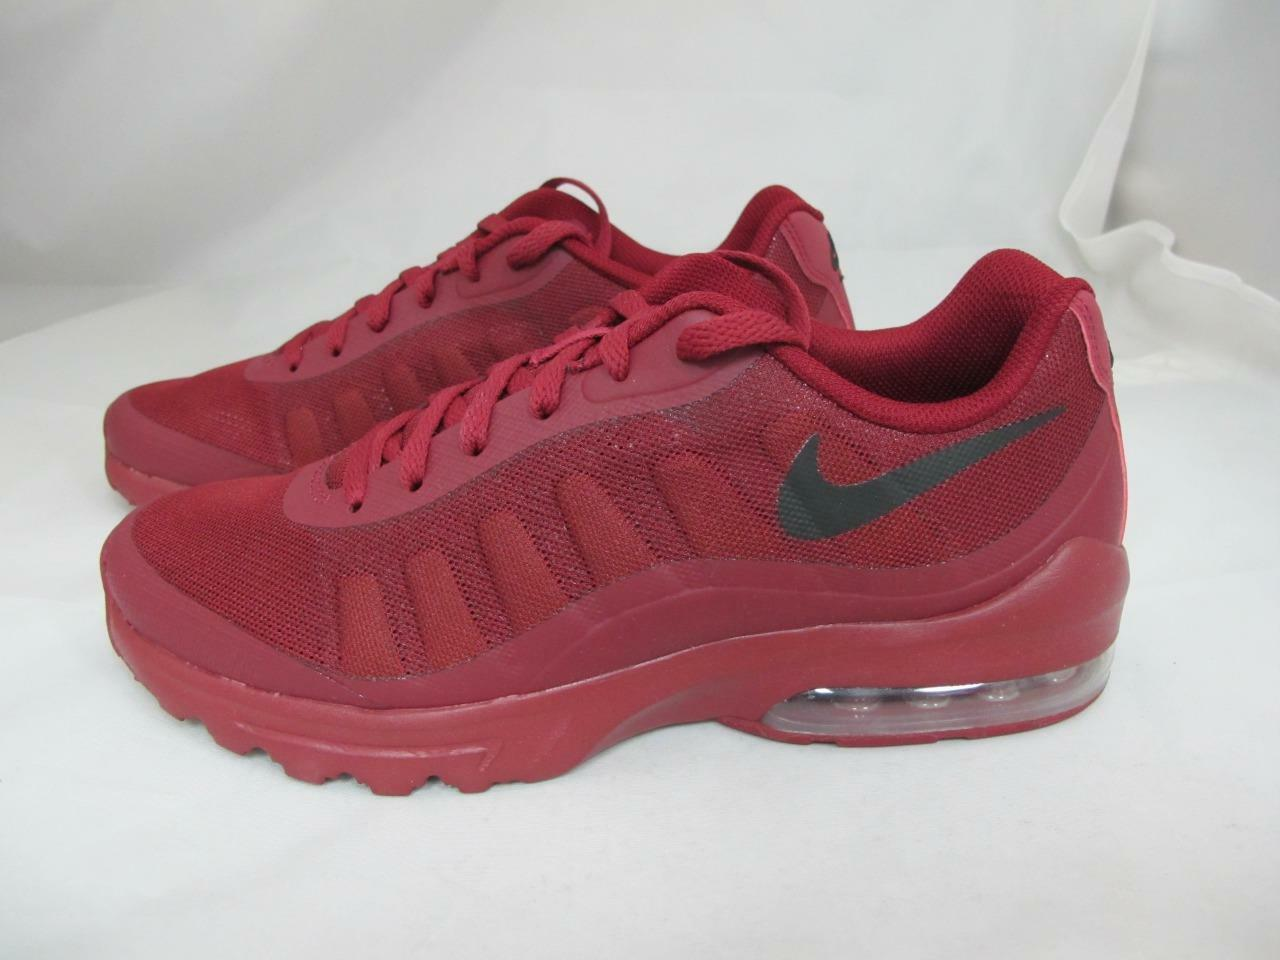 NEW MEN'S NIKE AIR MAX INVIGOR 749680-601